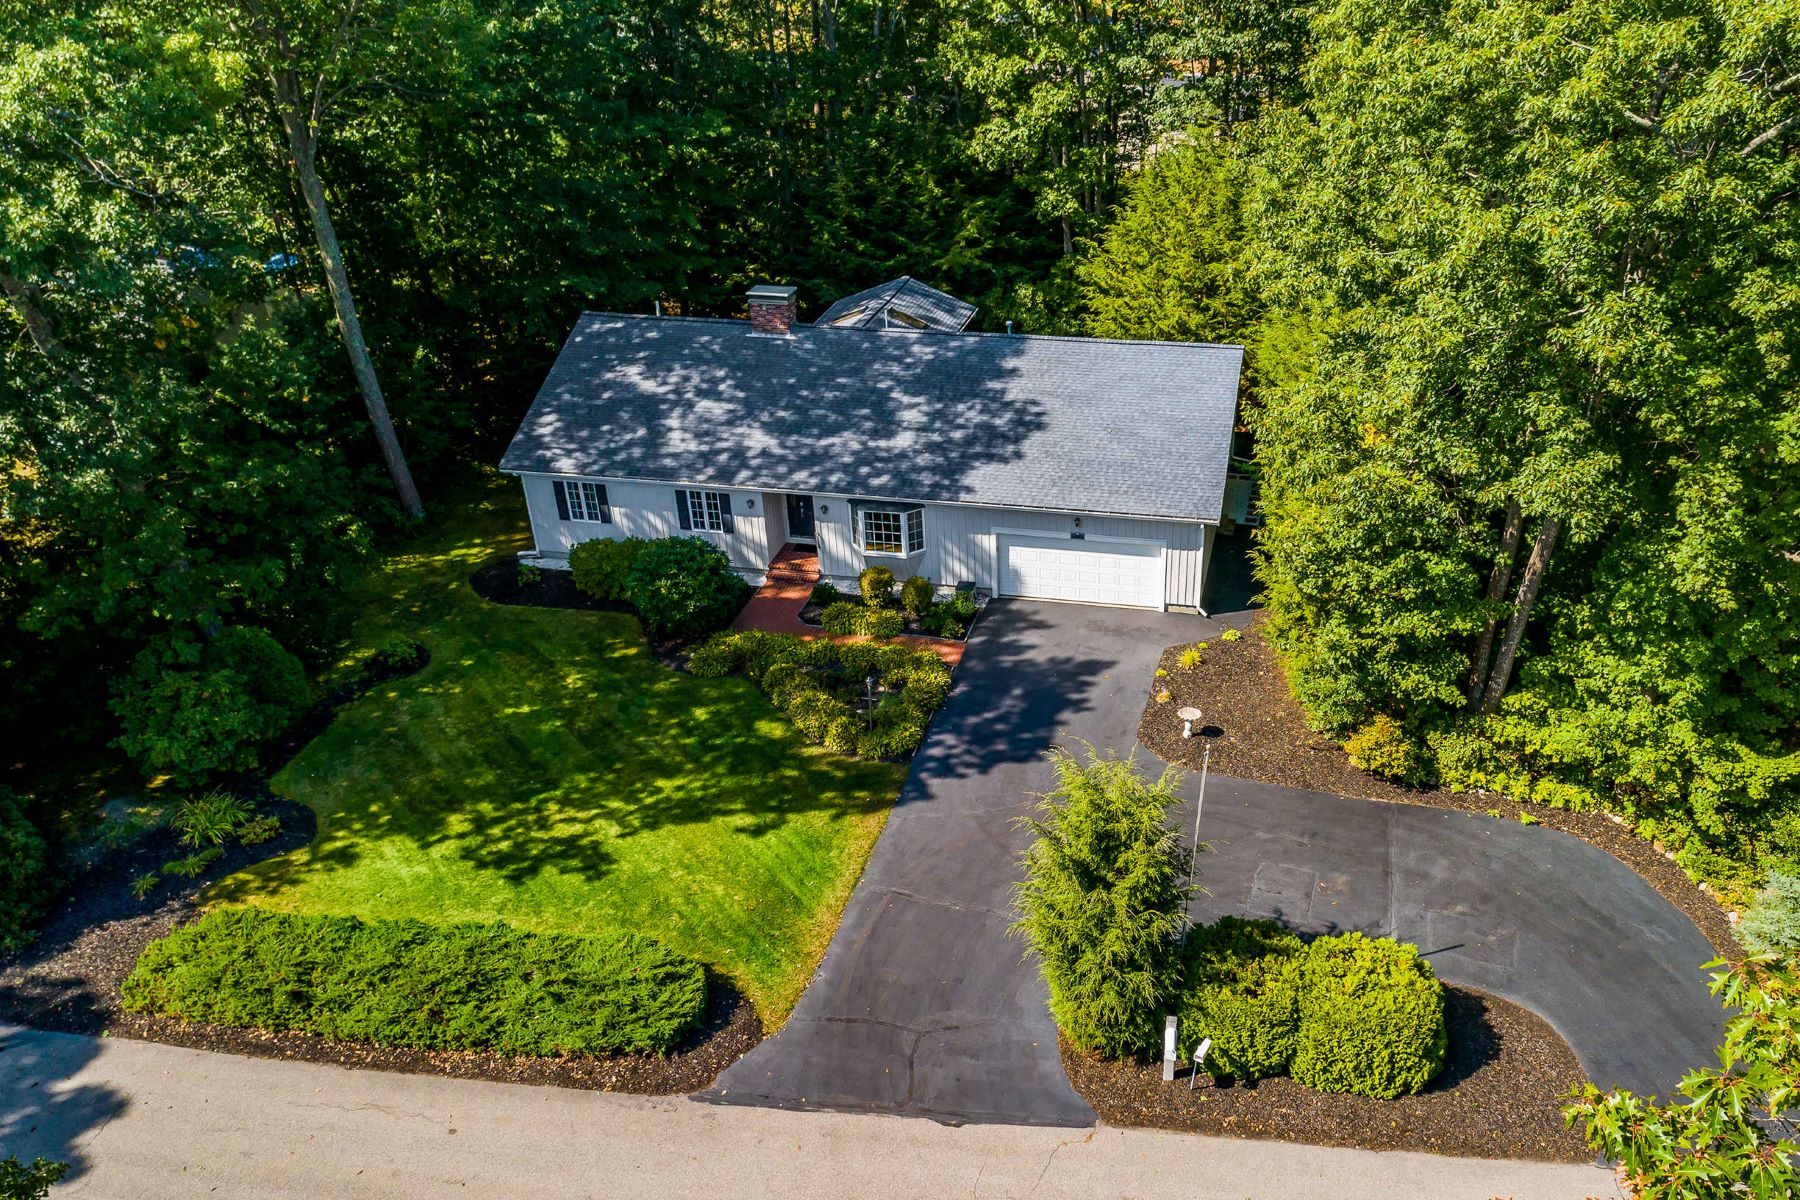 Single Family Homes for Sale at Pristine Ranch Blocks from Moody Beach 160 Blanchard Street, Wells, Maine 04090 United States